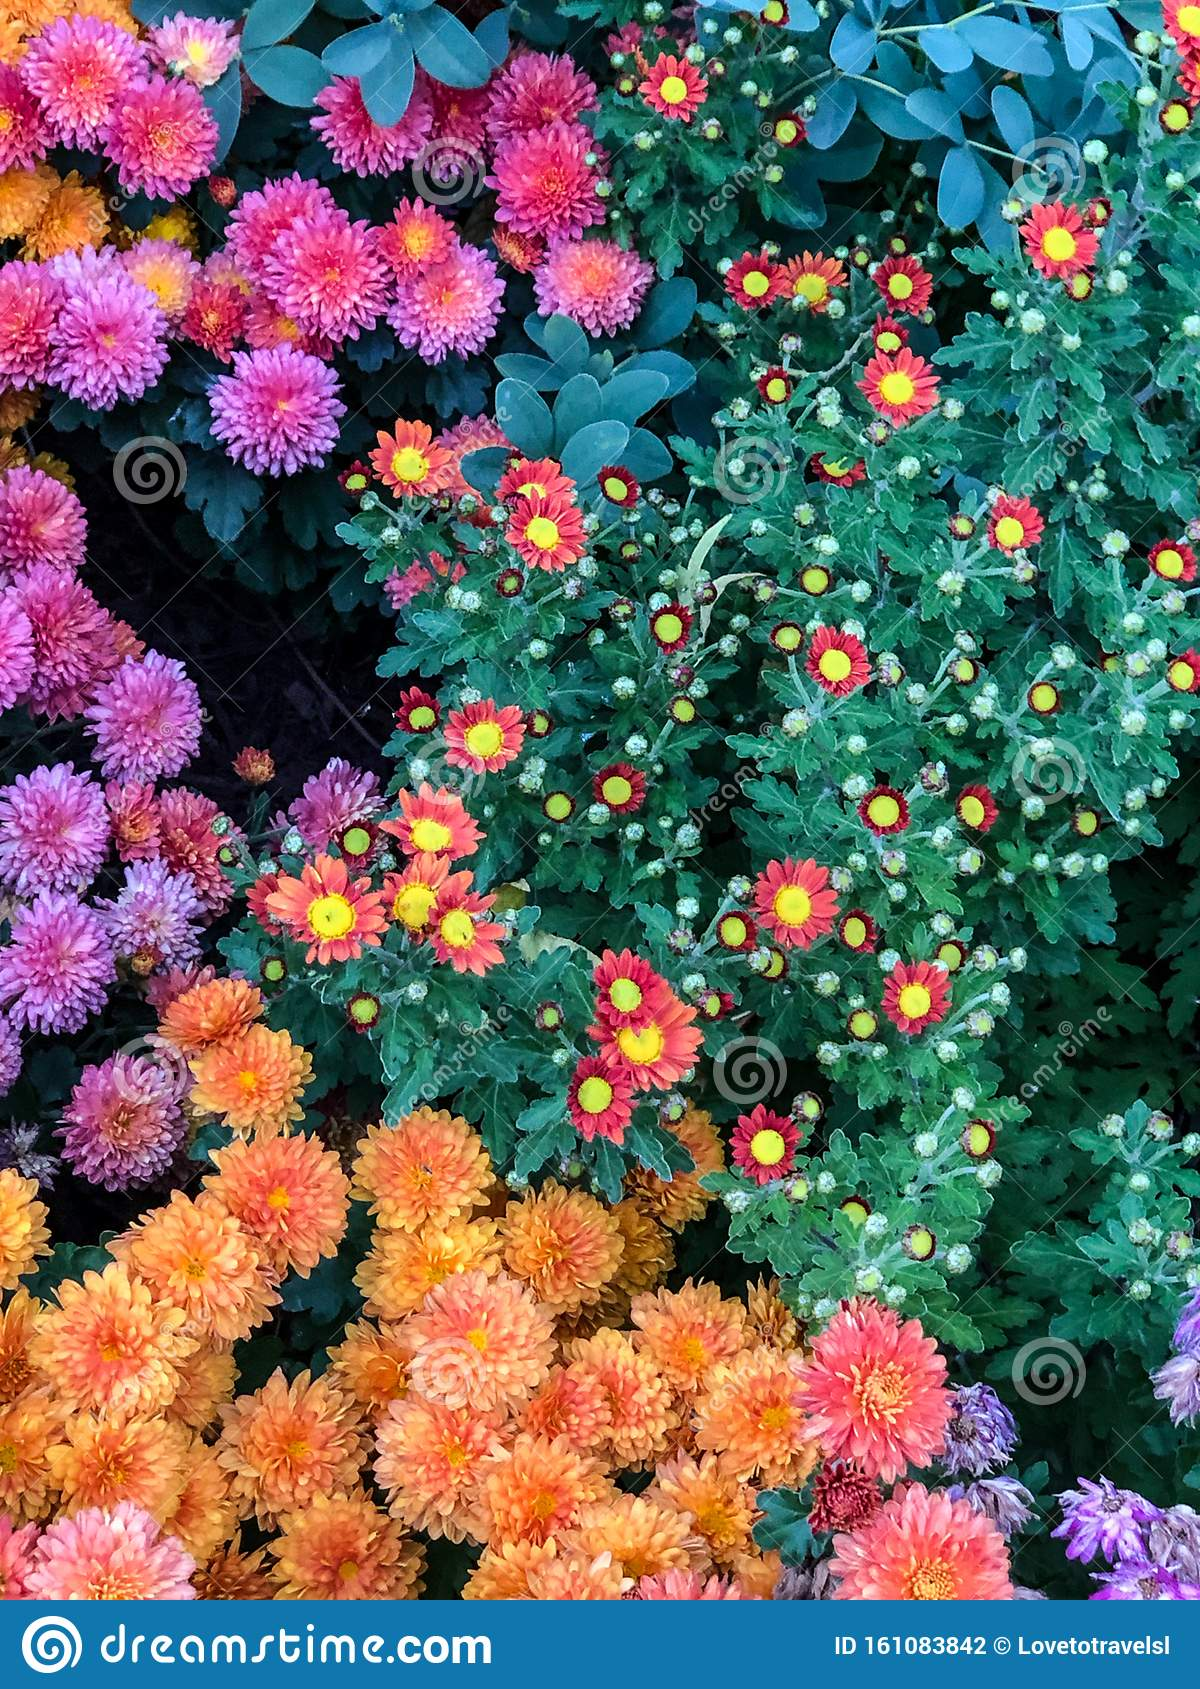 Colorful Fall Mum Flowers In Garden Stock Photo Image Of Flower Plants 161083842